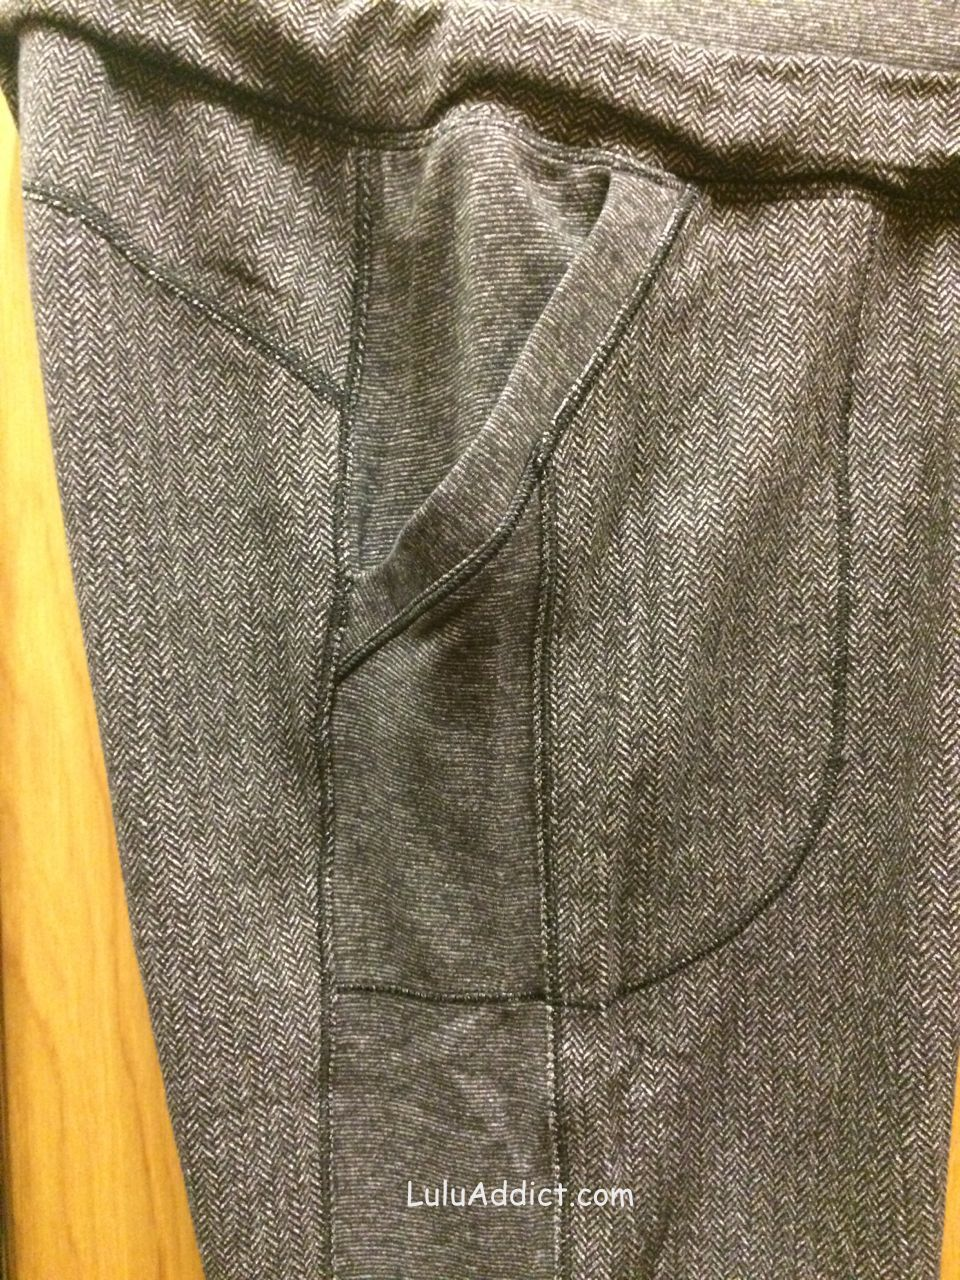 lululemon base runner pant in herringbone